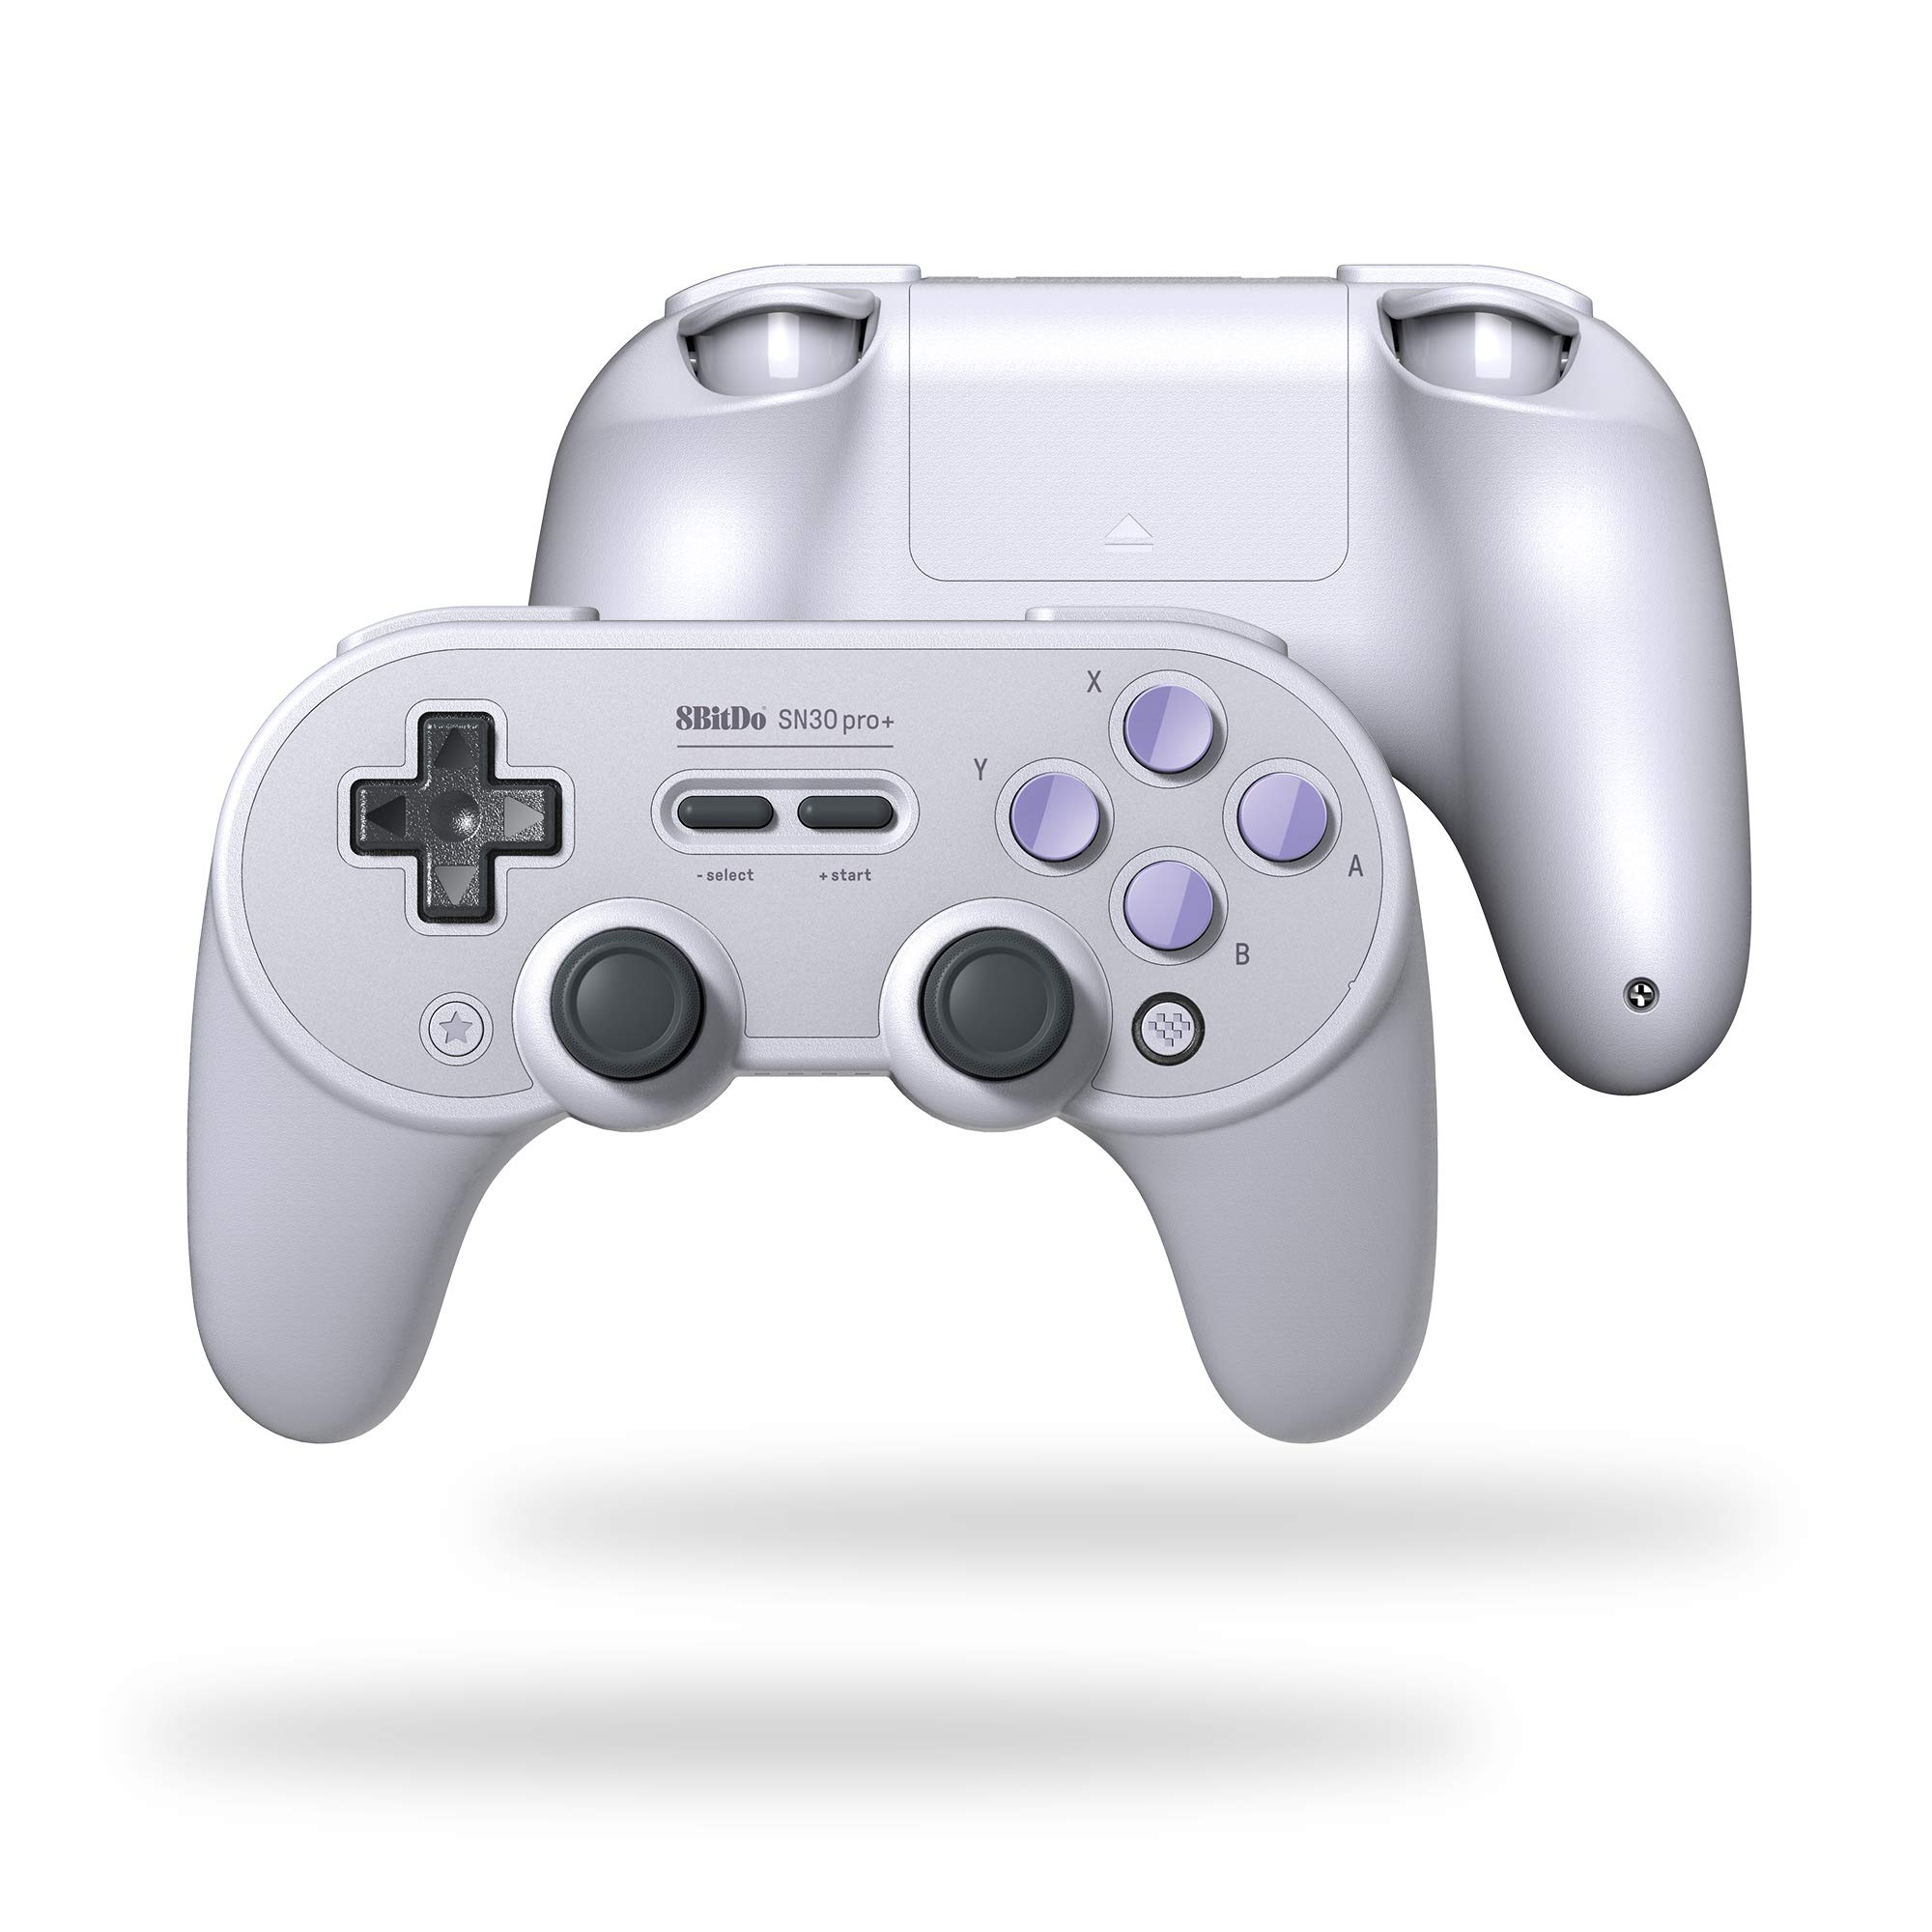 8Bitdo Sn30 Pro+ Bluetooth Controller Wireless Gamepad for Switch, PC, macOS, Android, Steam and Raspberry Pi (SN Edition)